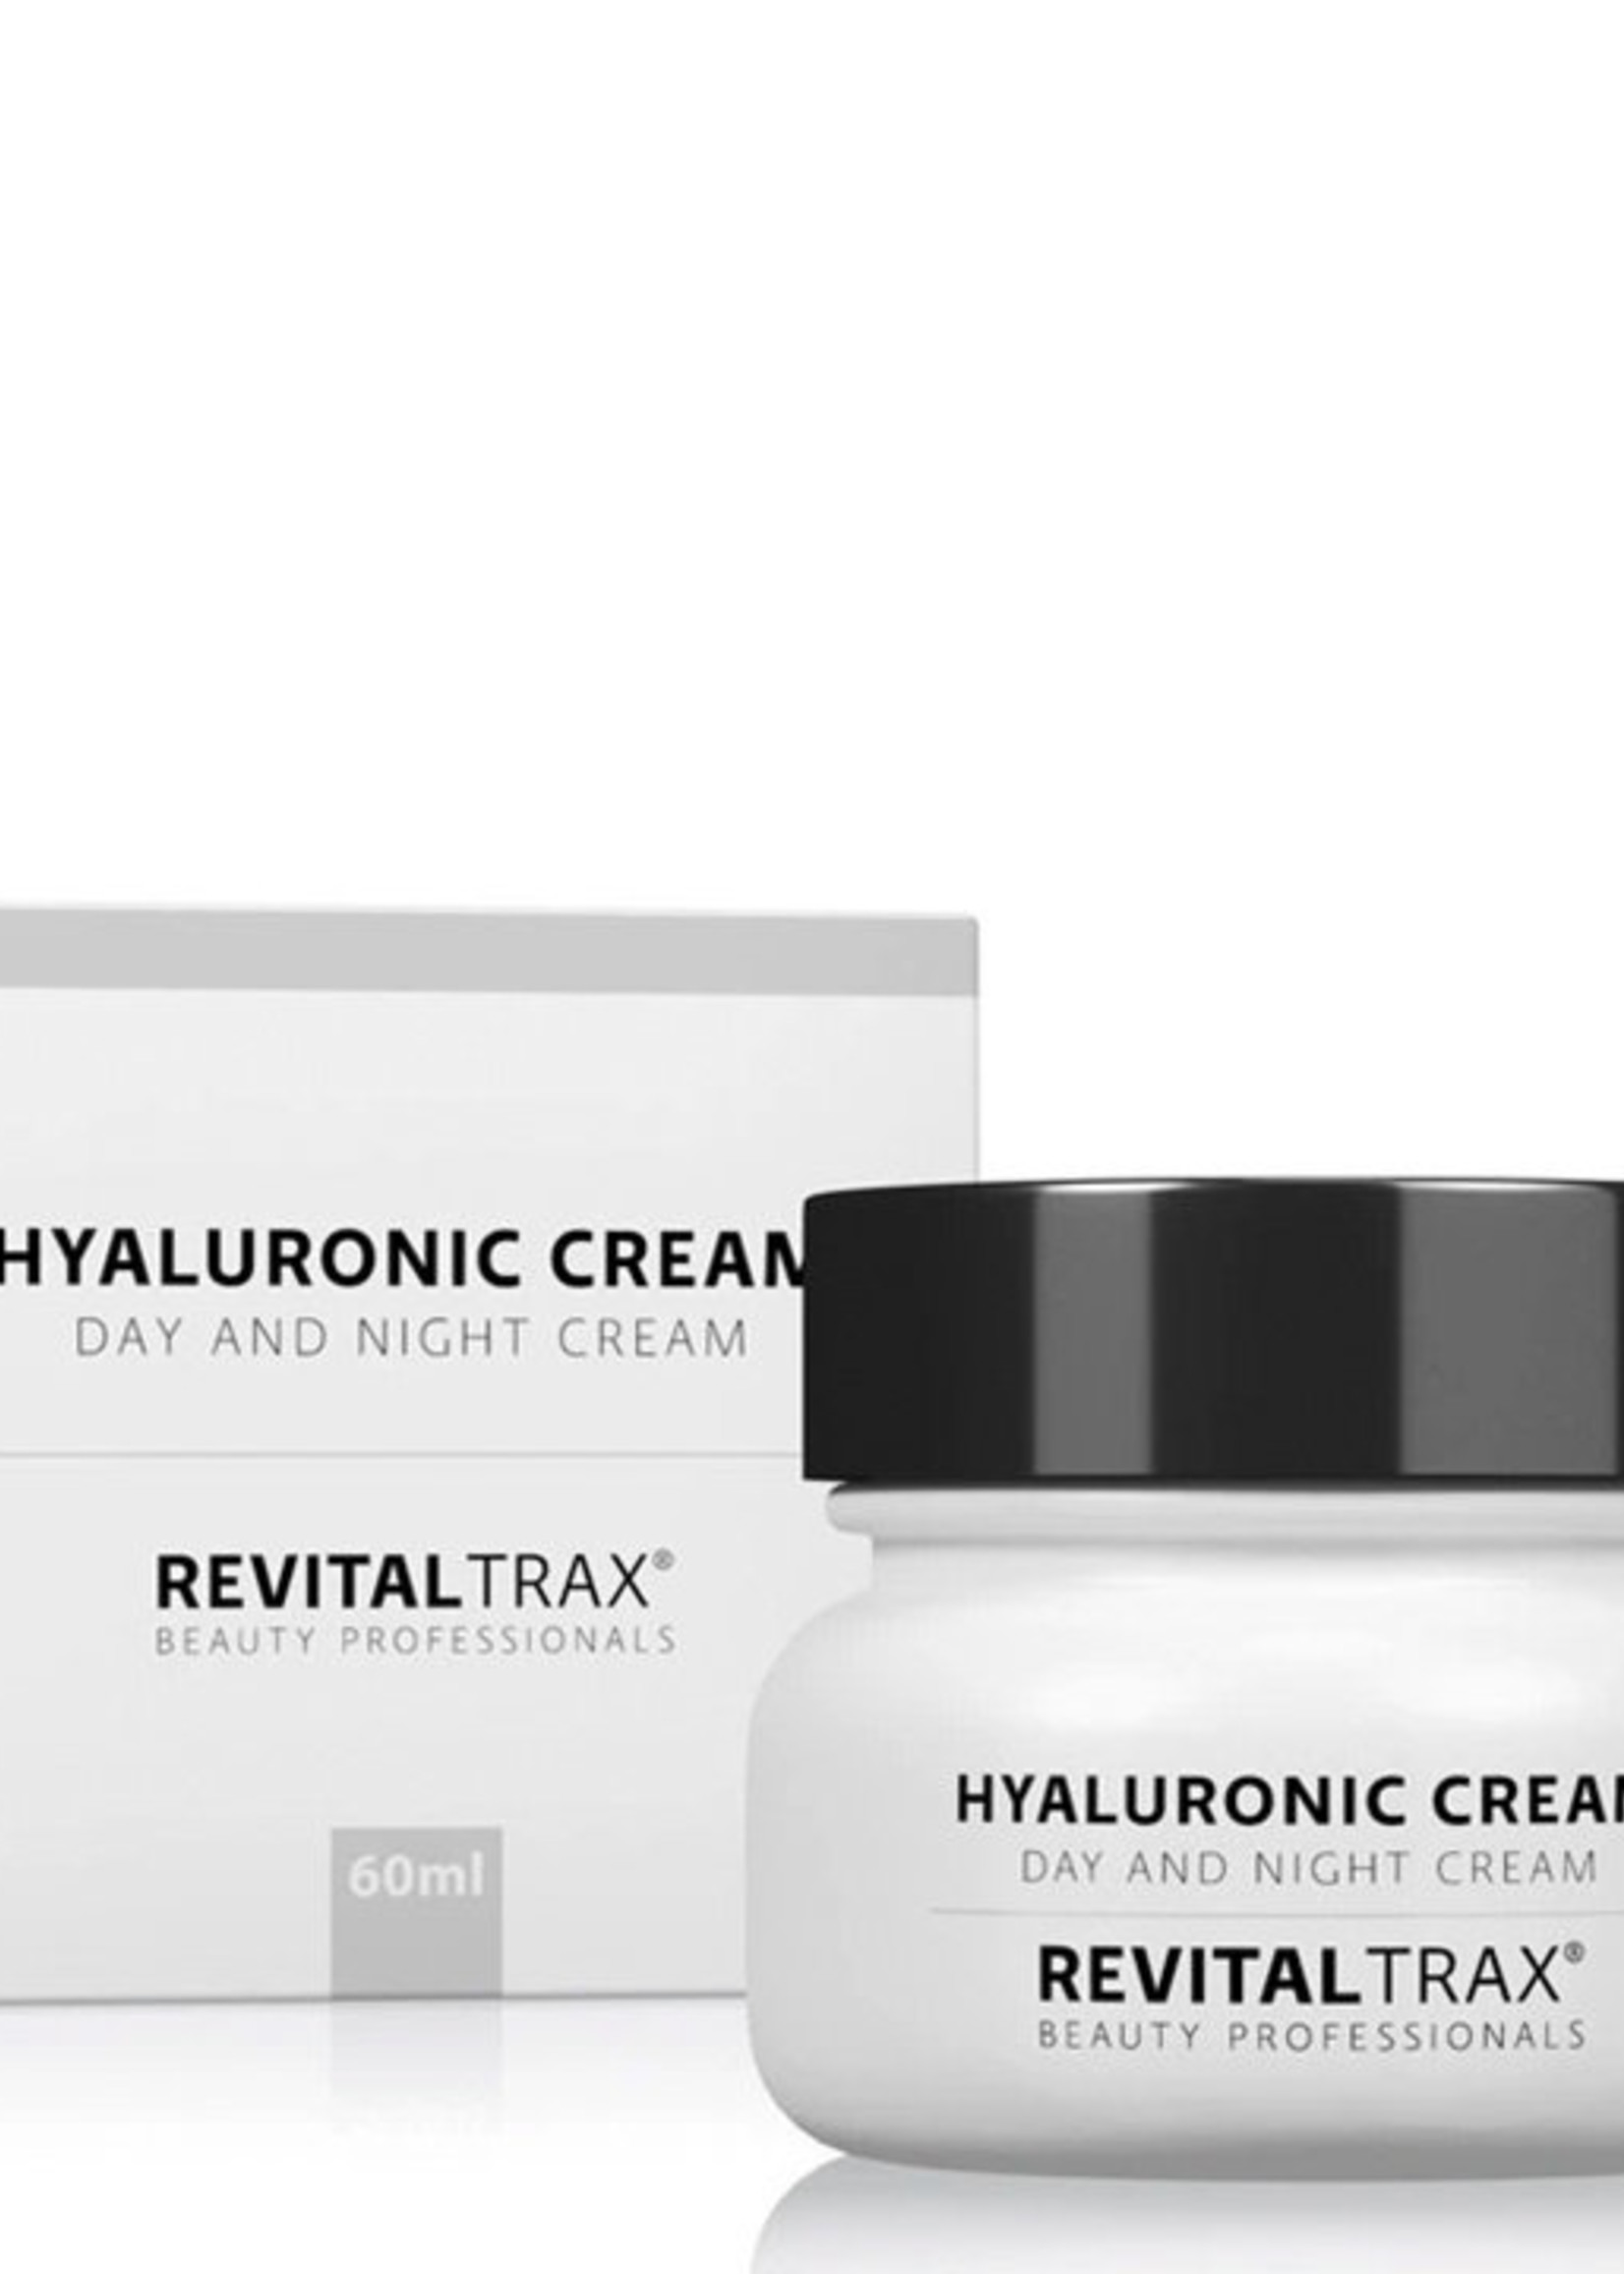 Hyaluronic Day and Night Cream